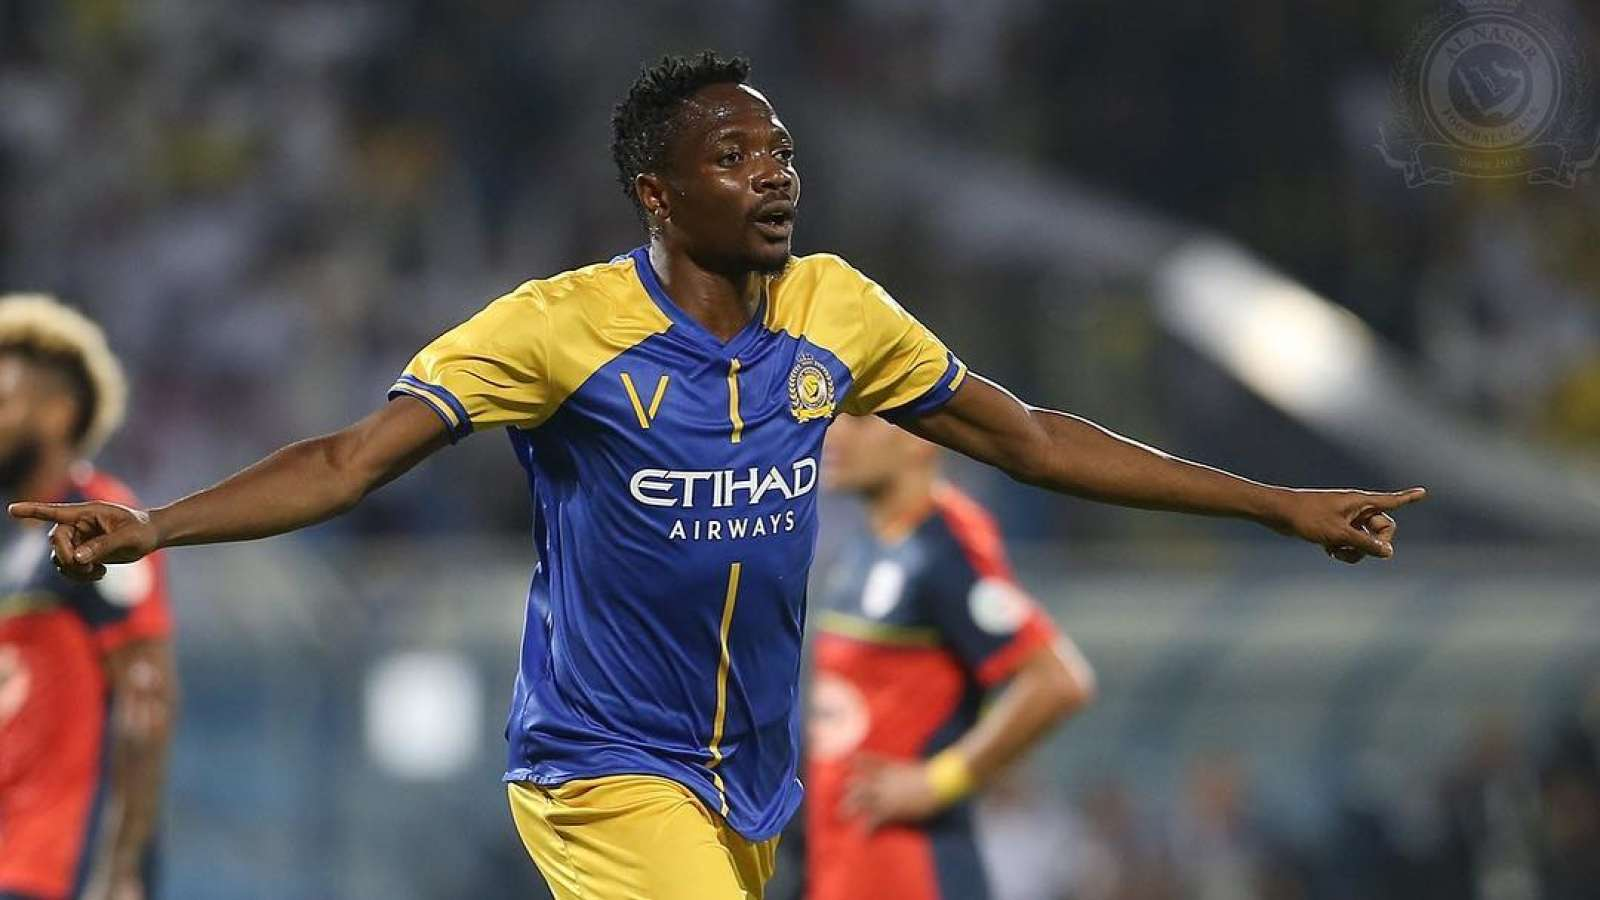 Musa wanted by Fenerbahçe in January